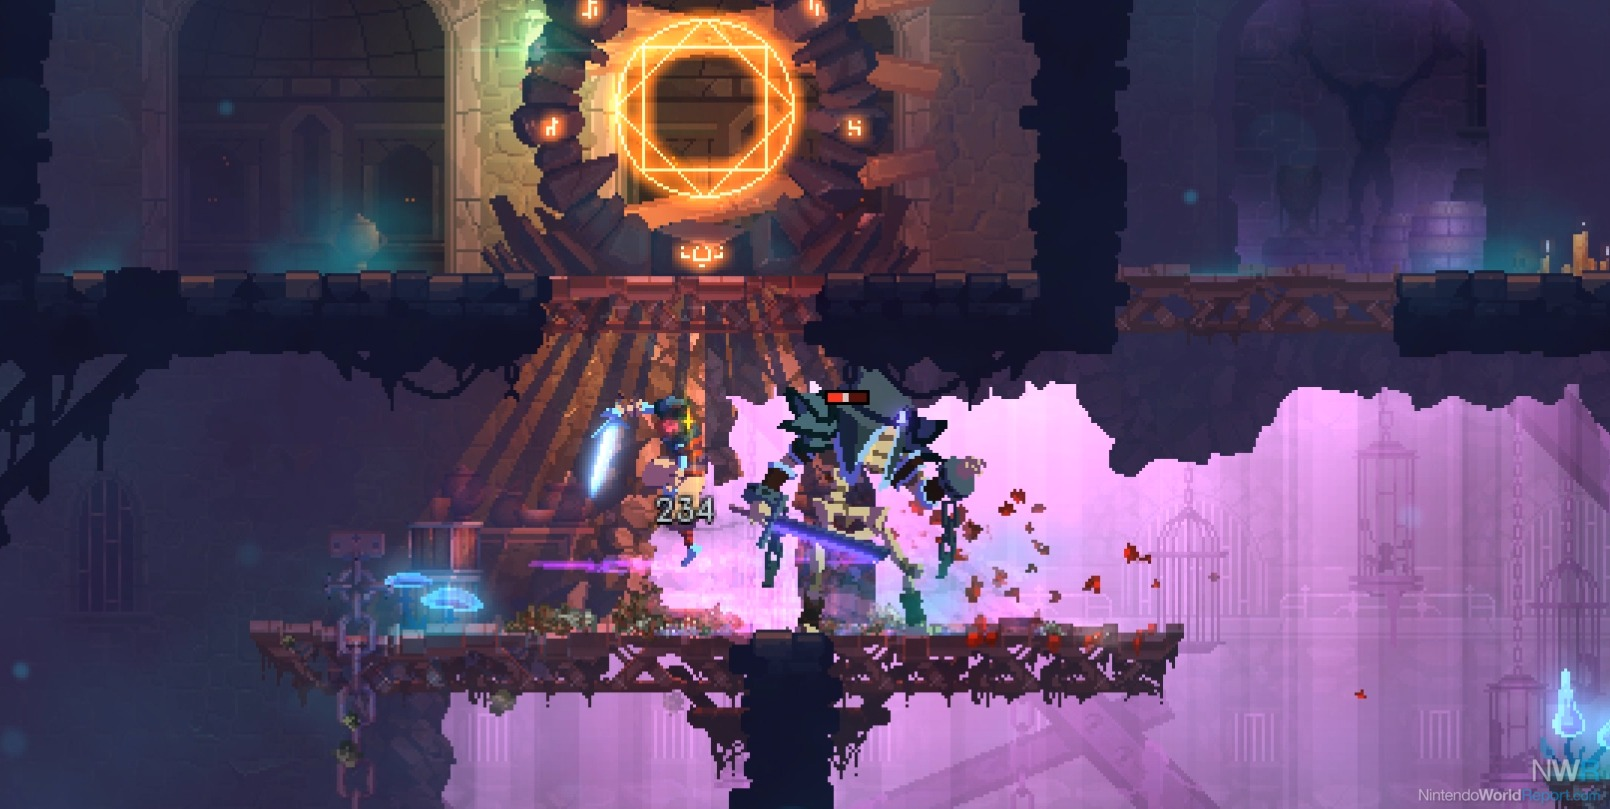 PC sensation Dead Cells hits Xbox One in 2018